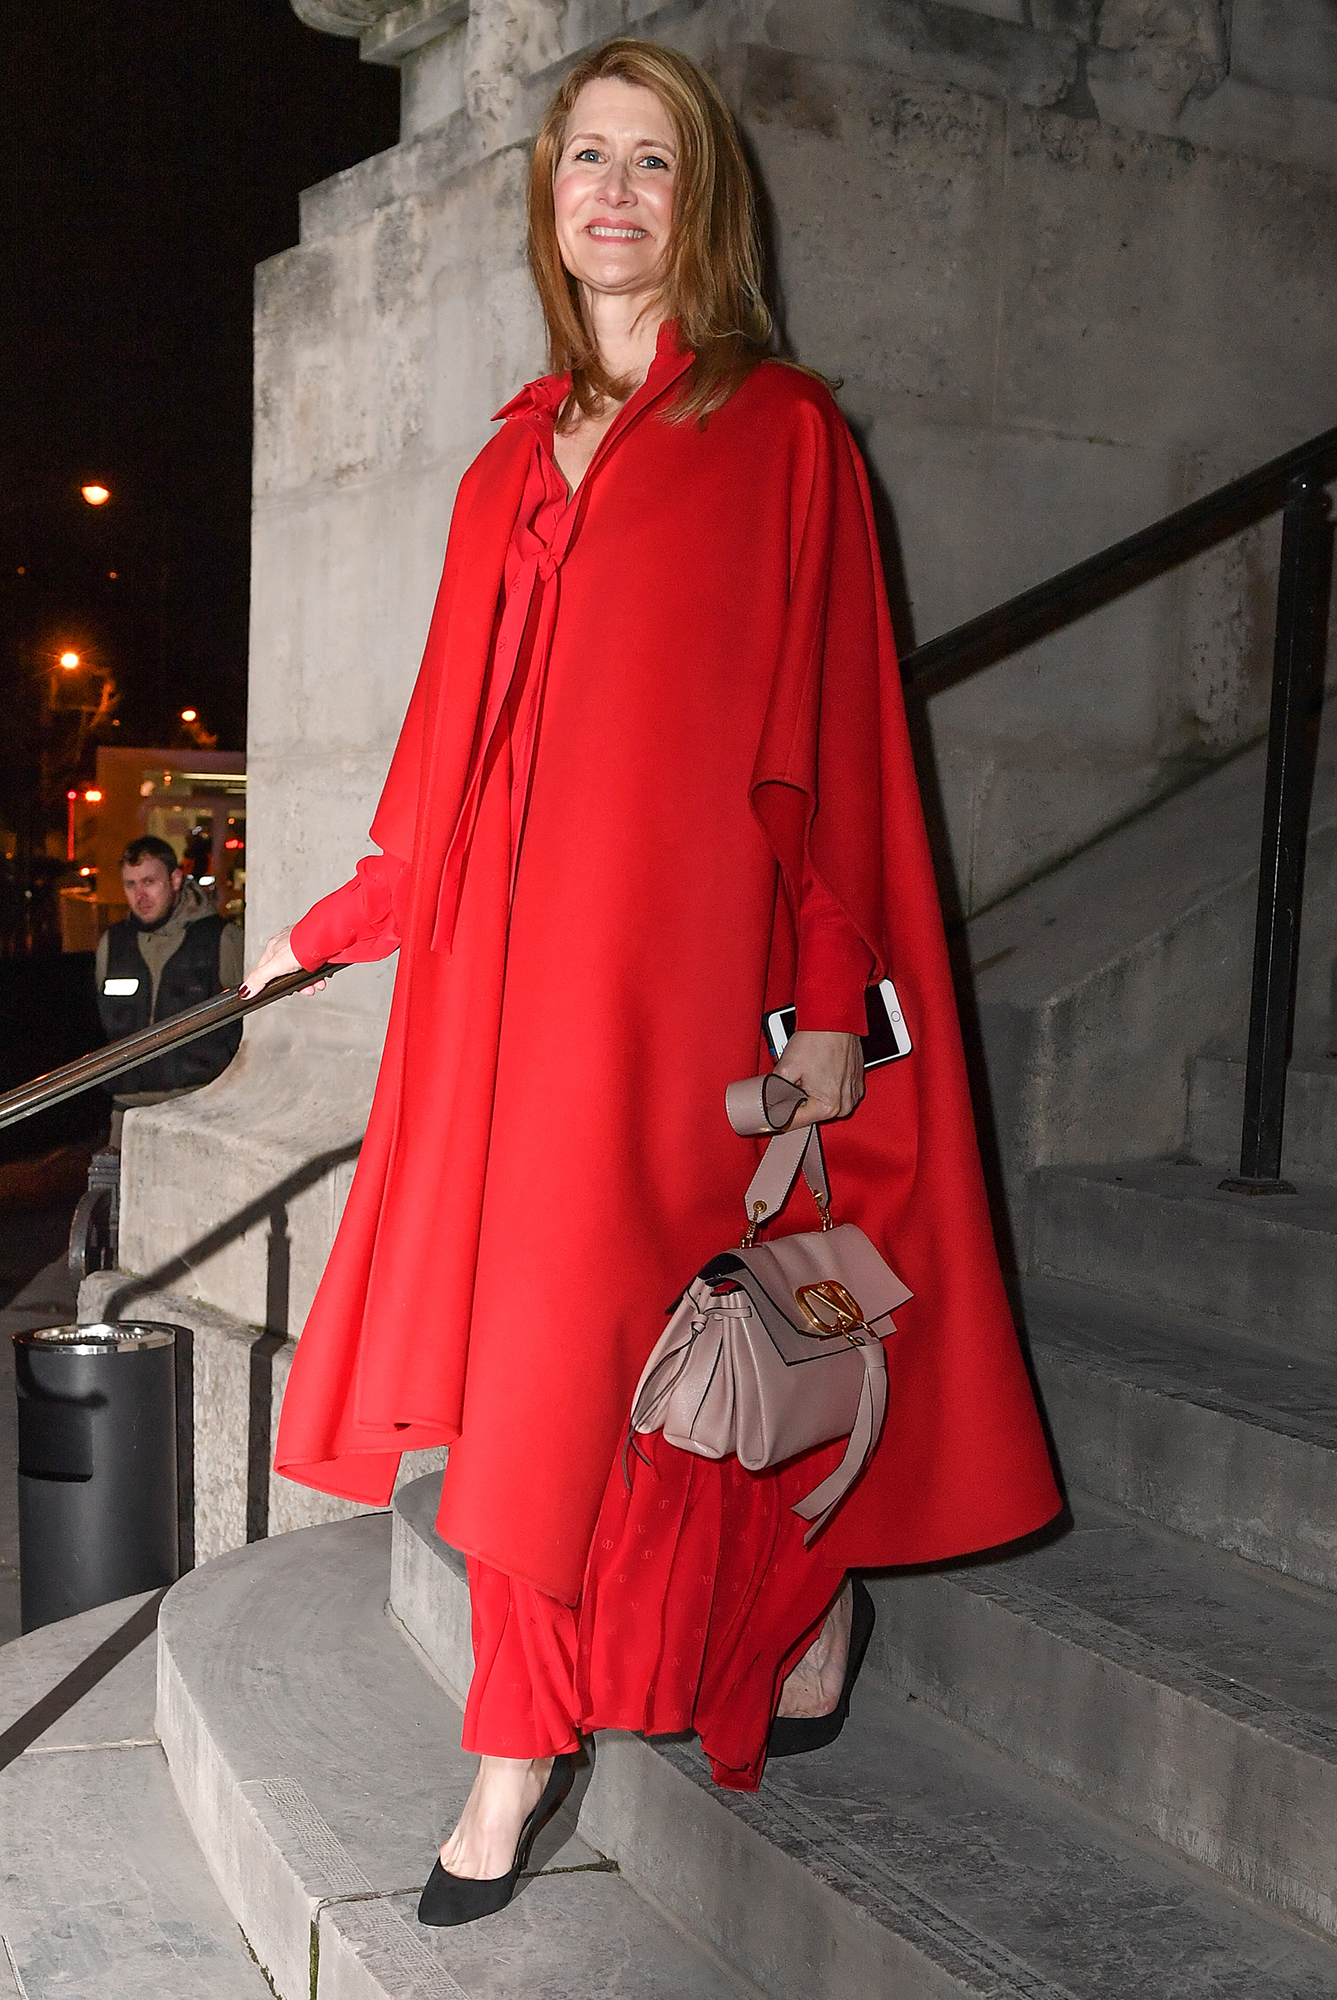 See the Best Celebrity Street Style From Paris Menswear Fall-Winter 2019 Fashion Week - Red hot! The Big Little Lies star stunned in a voluminous red ensemble at the Valentino show on Wednesday, January 16.